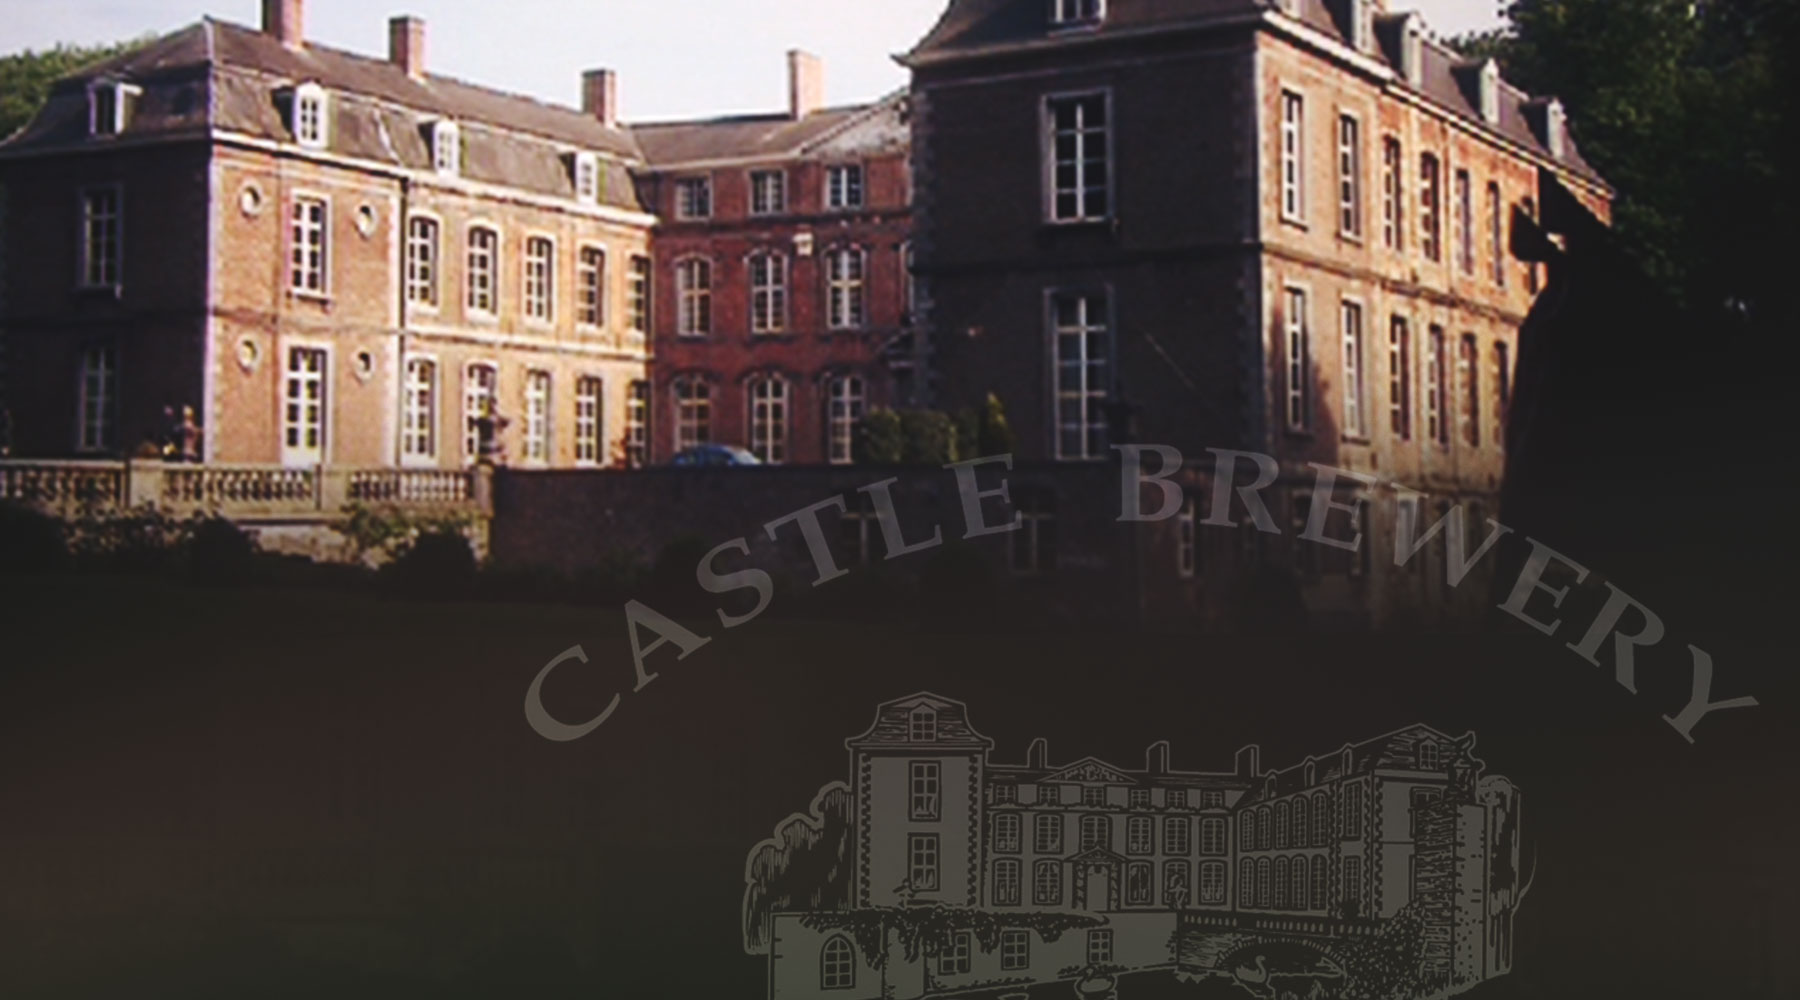 Van Honsebrouck Castle Brewery | Just Wine